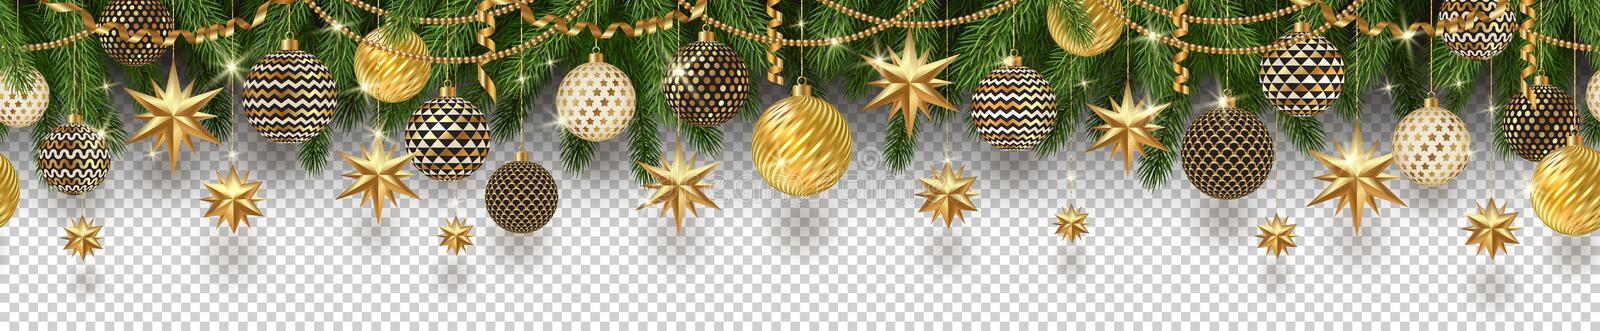 Christmas golden decoration and Christmas tree branches on a checkered background. Can be used on any background. Seamless frieze. royalty free illustration